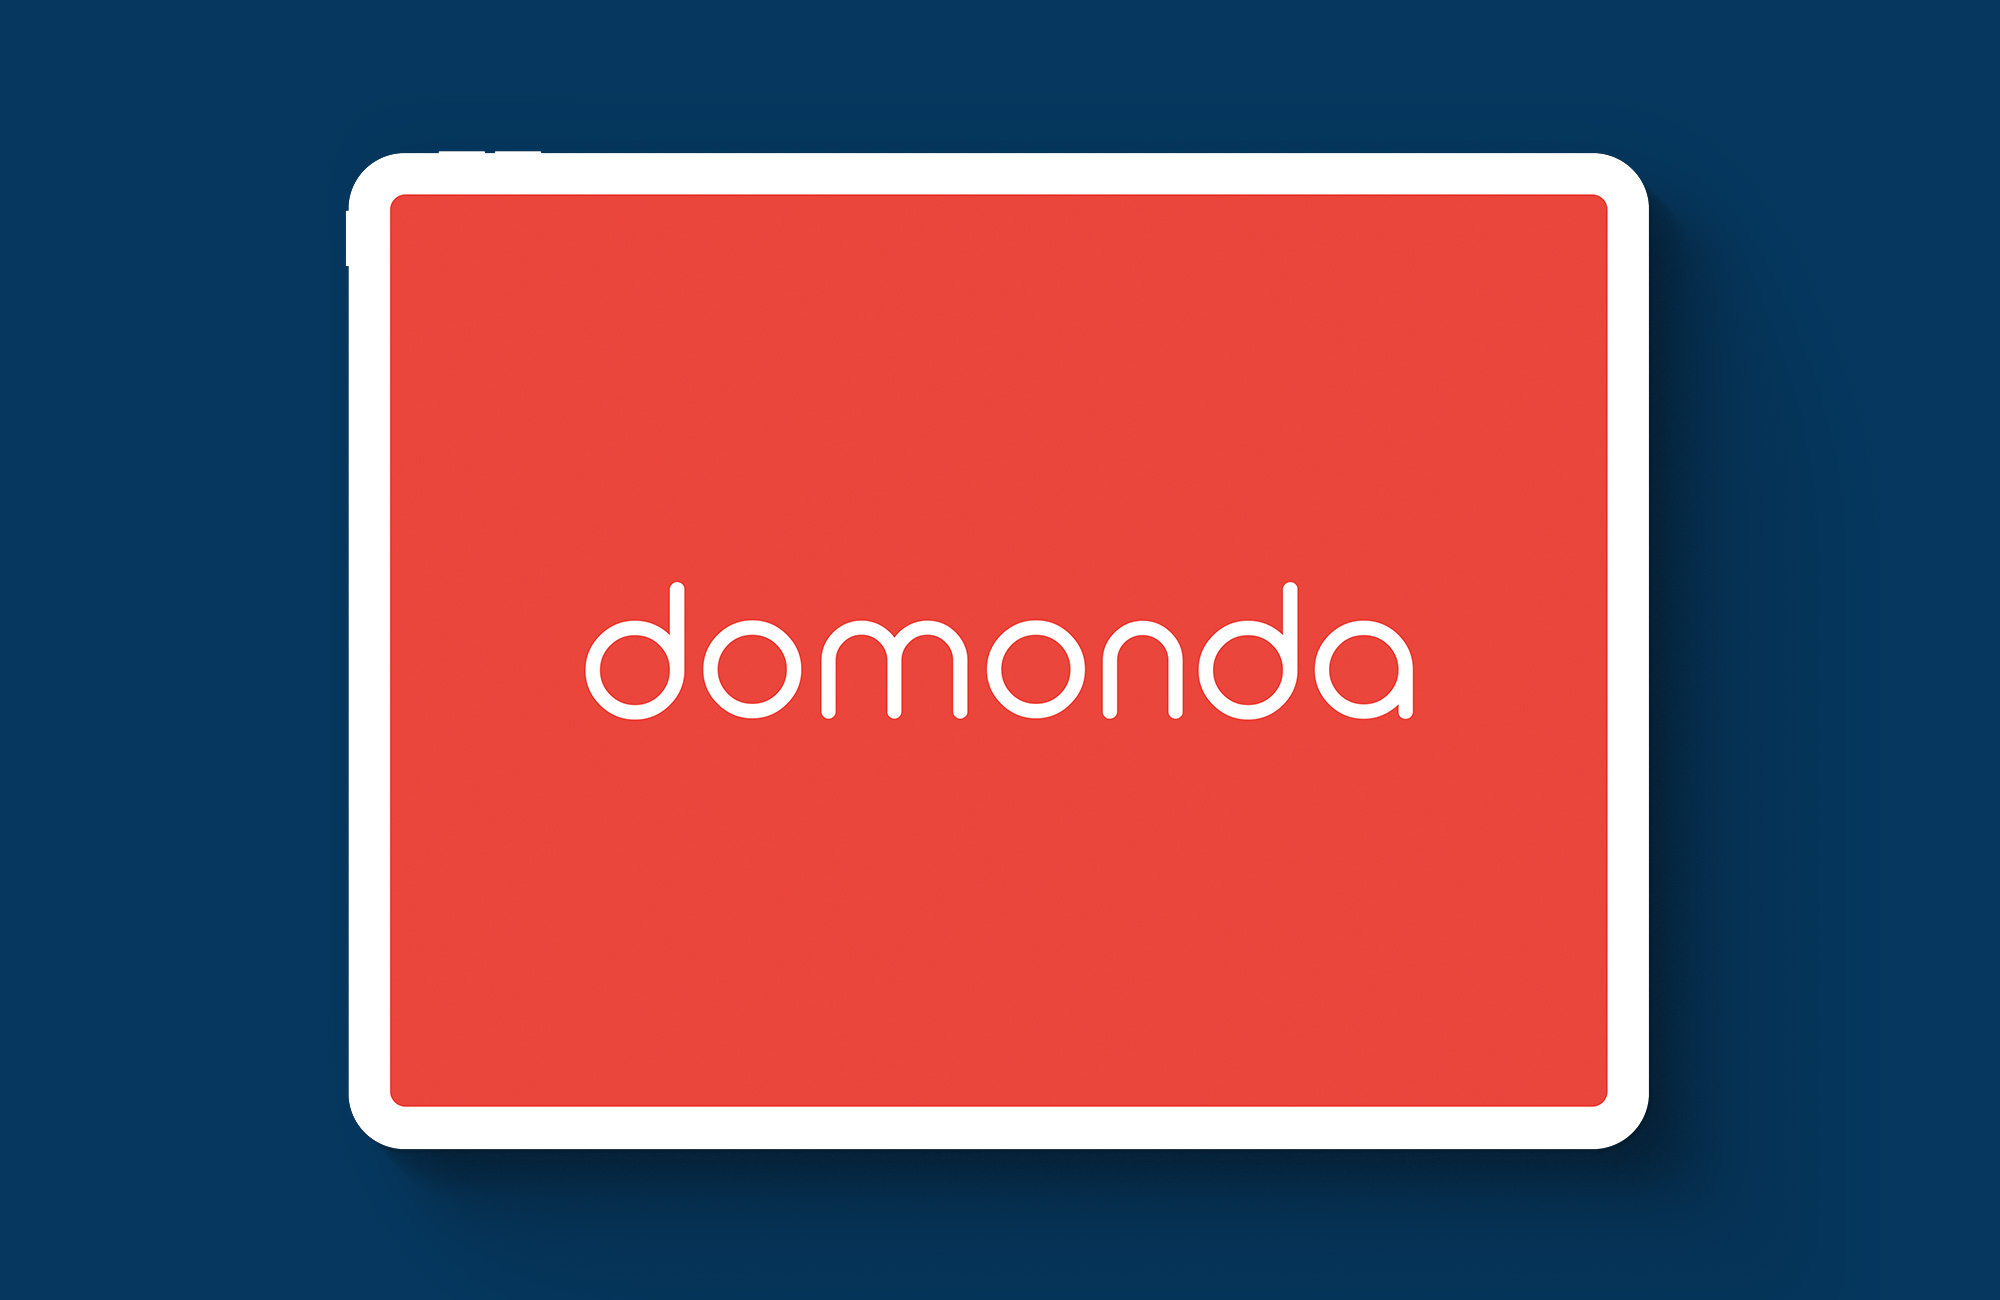 domonda Tablet